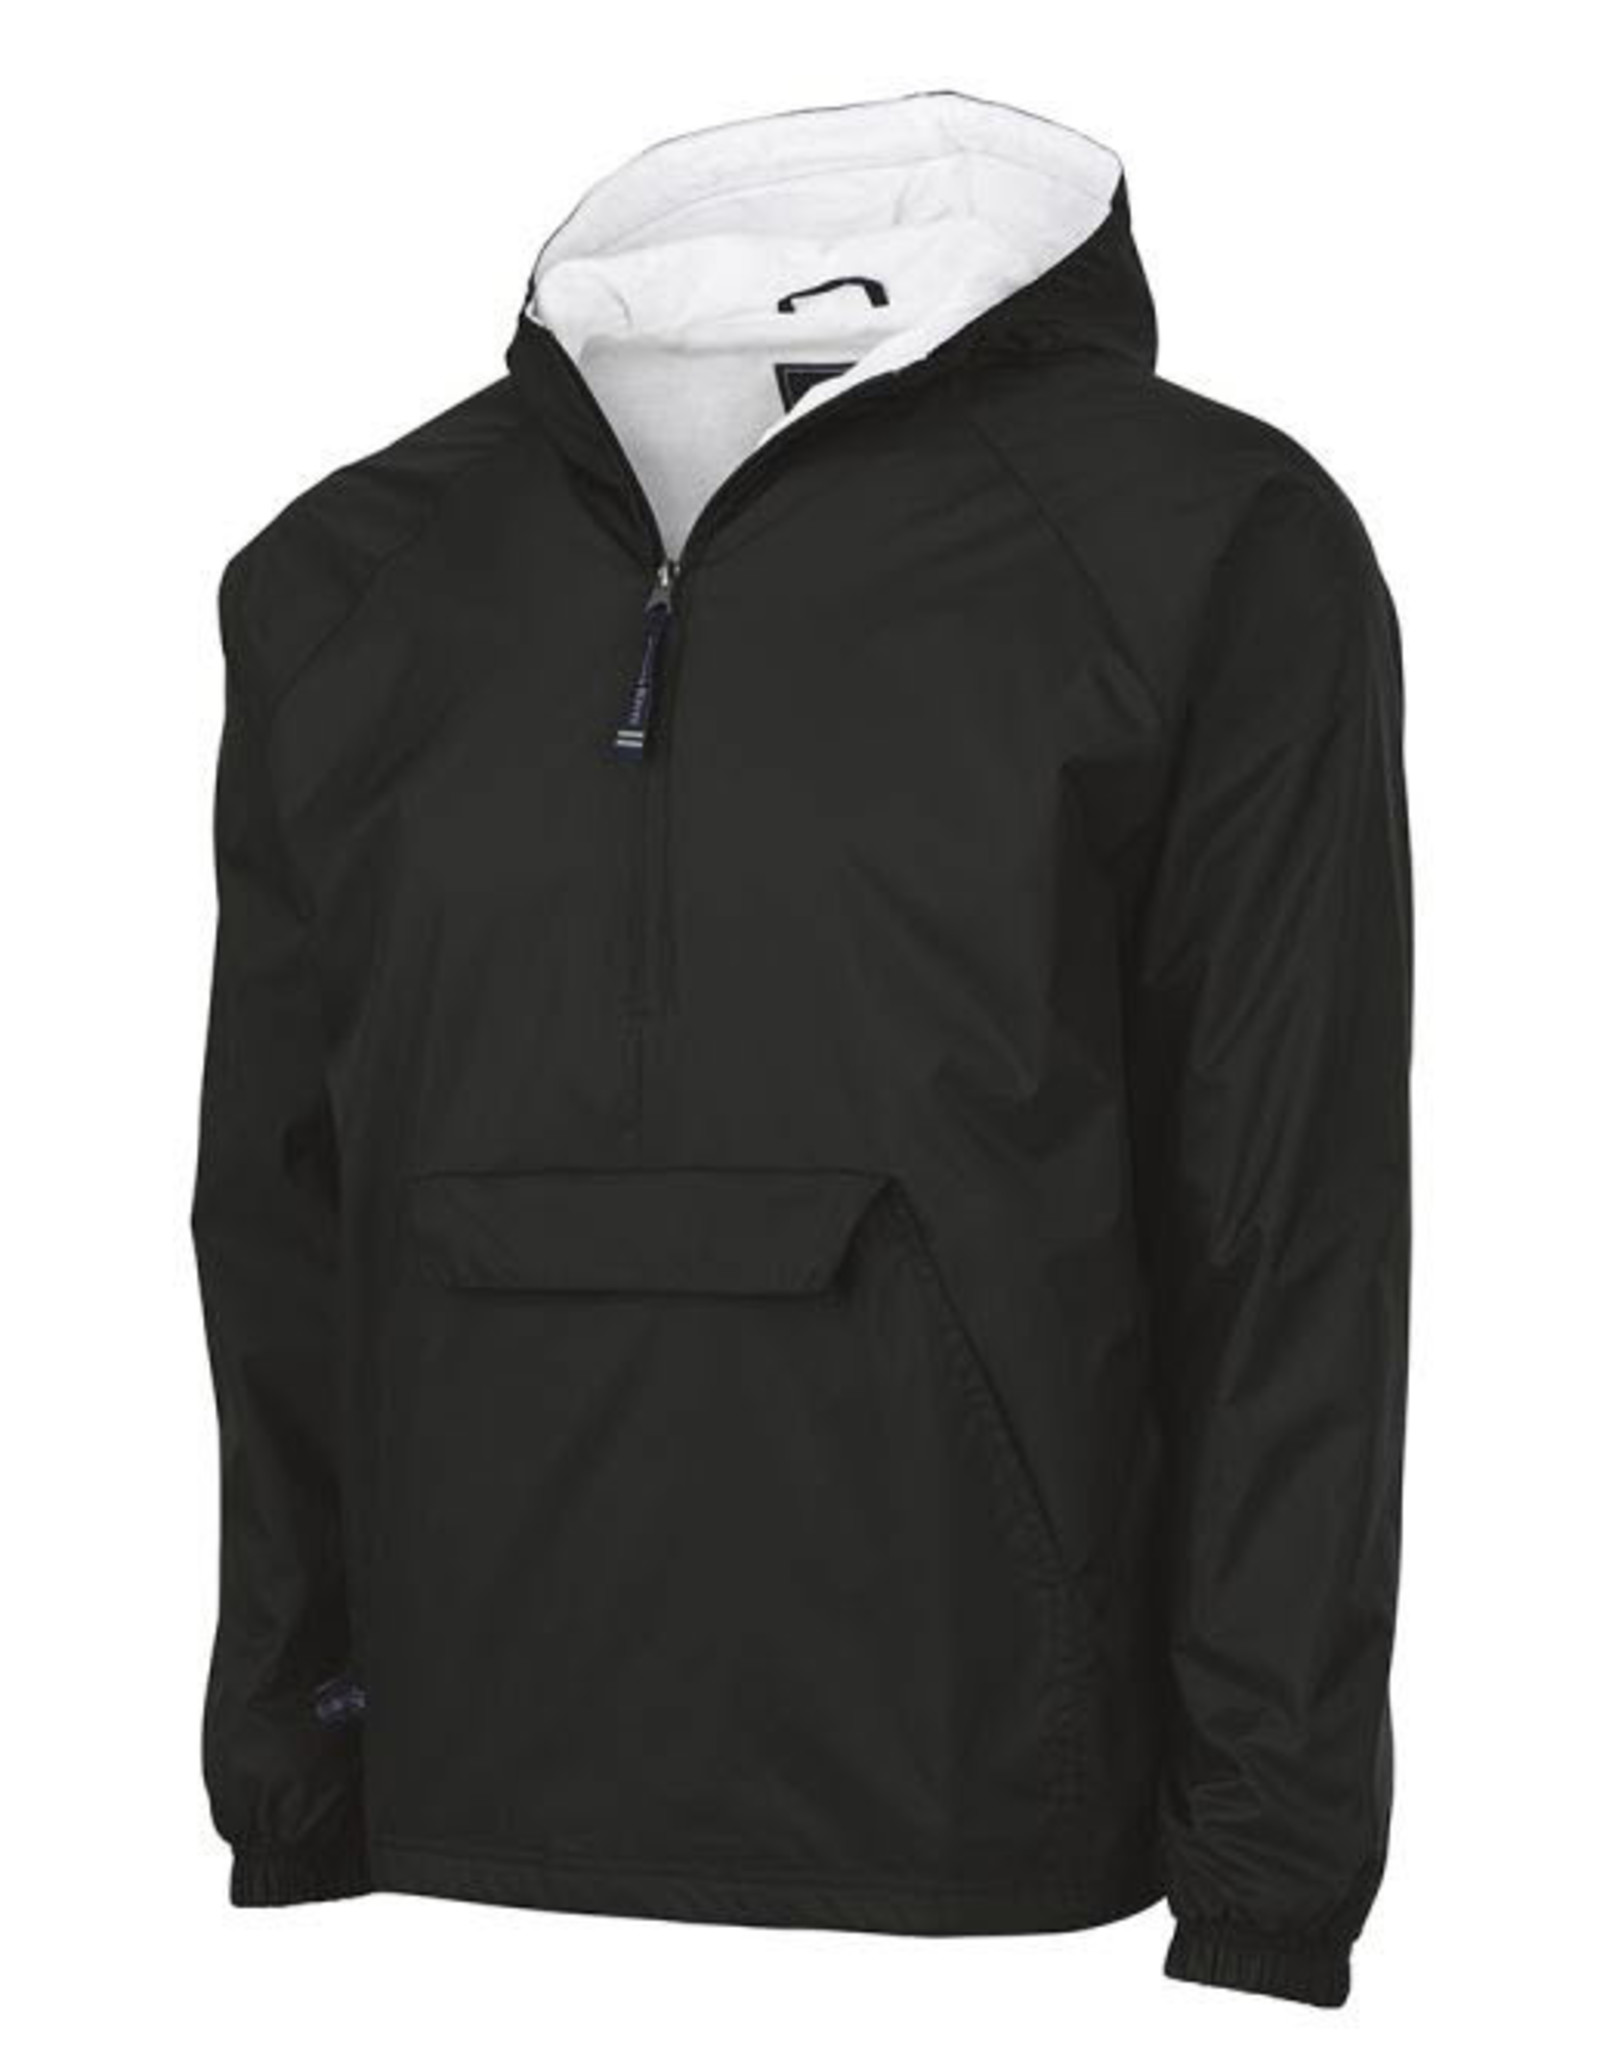 Charles River Apparel Youth Classic Solid Pull Over